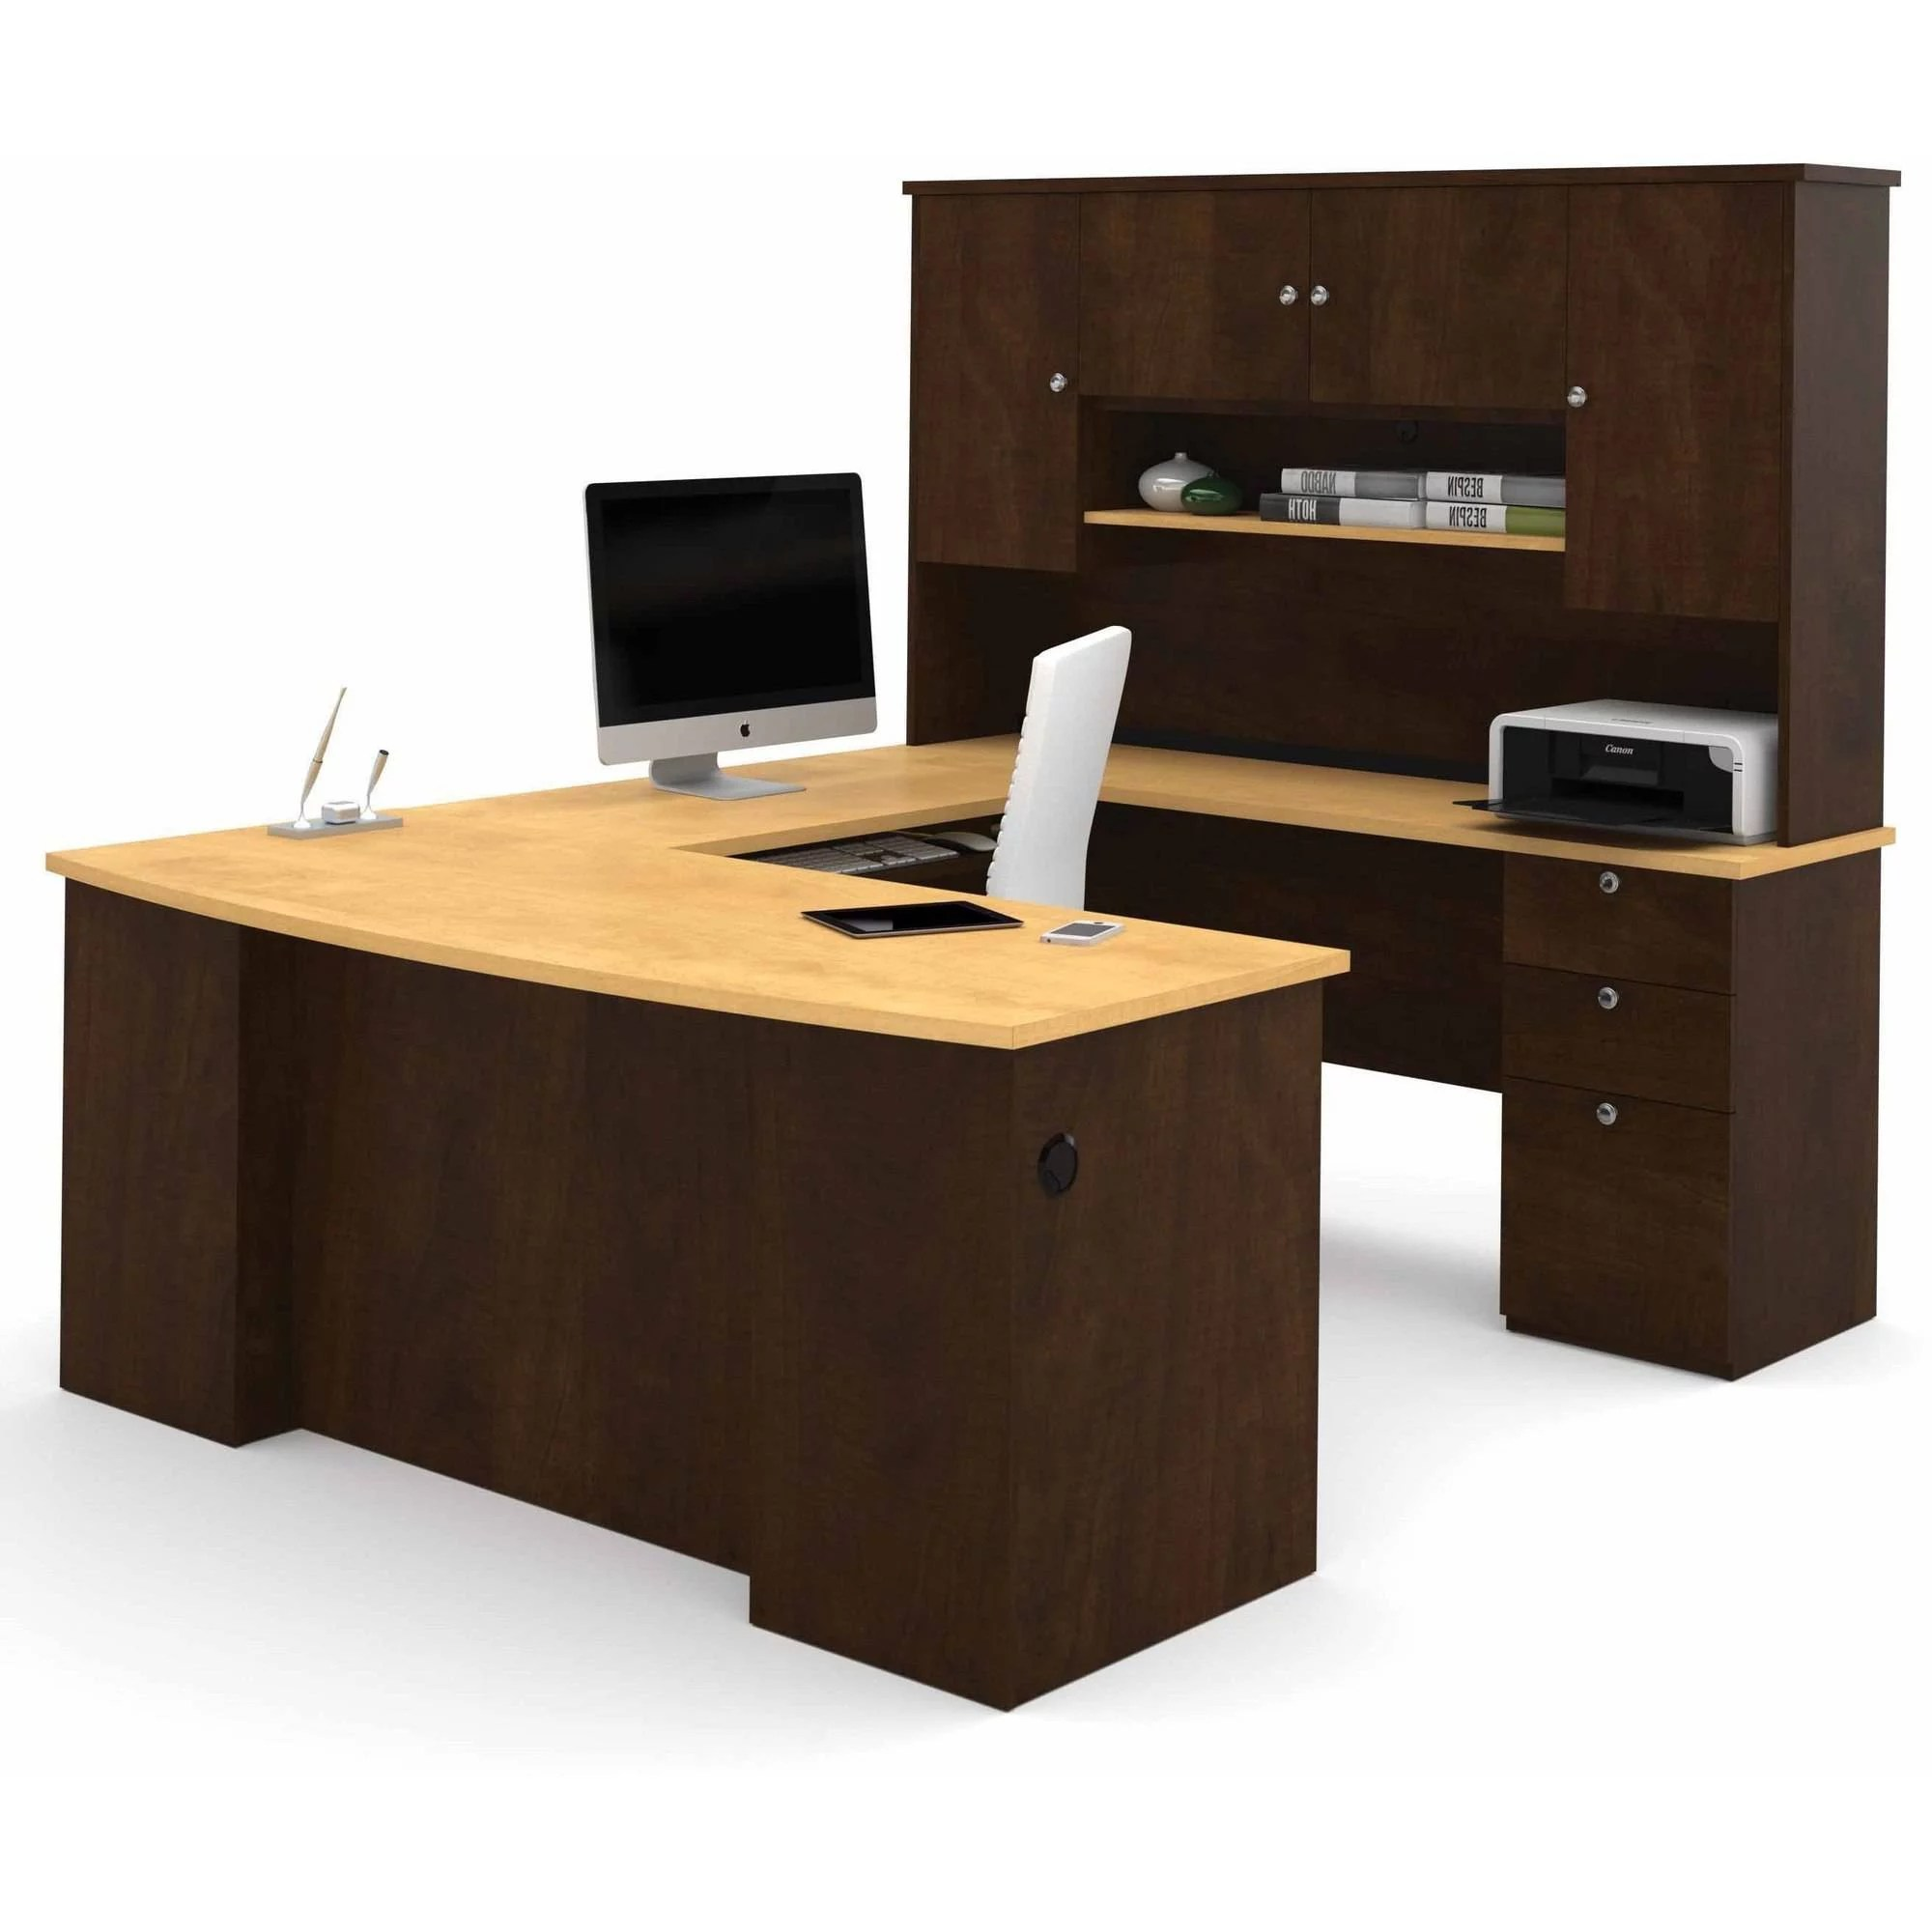 Office Furniture Desk Business Office Furniture Walmart